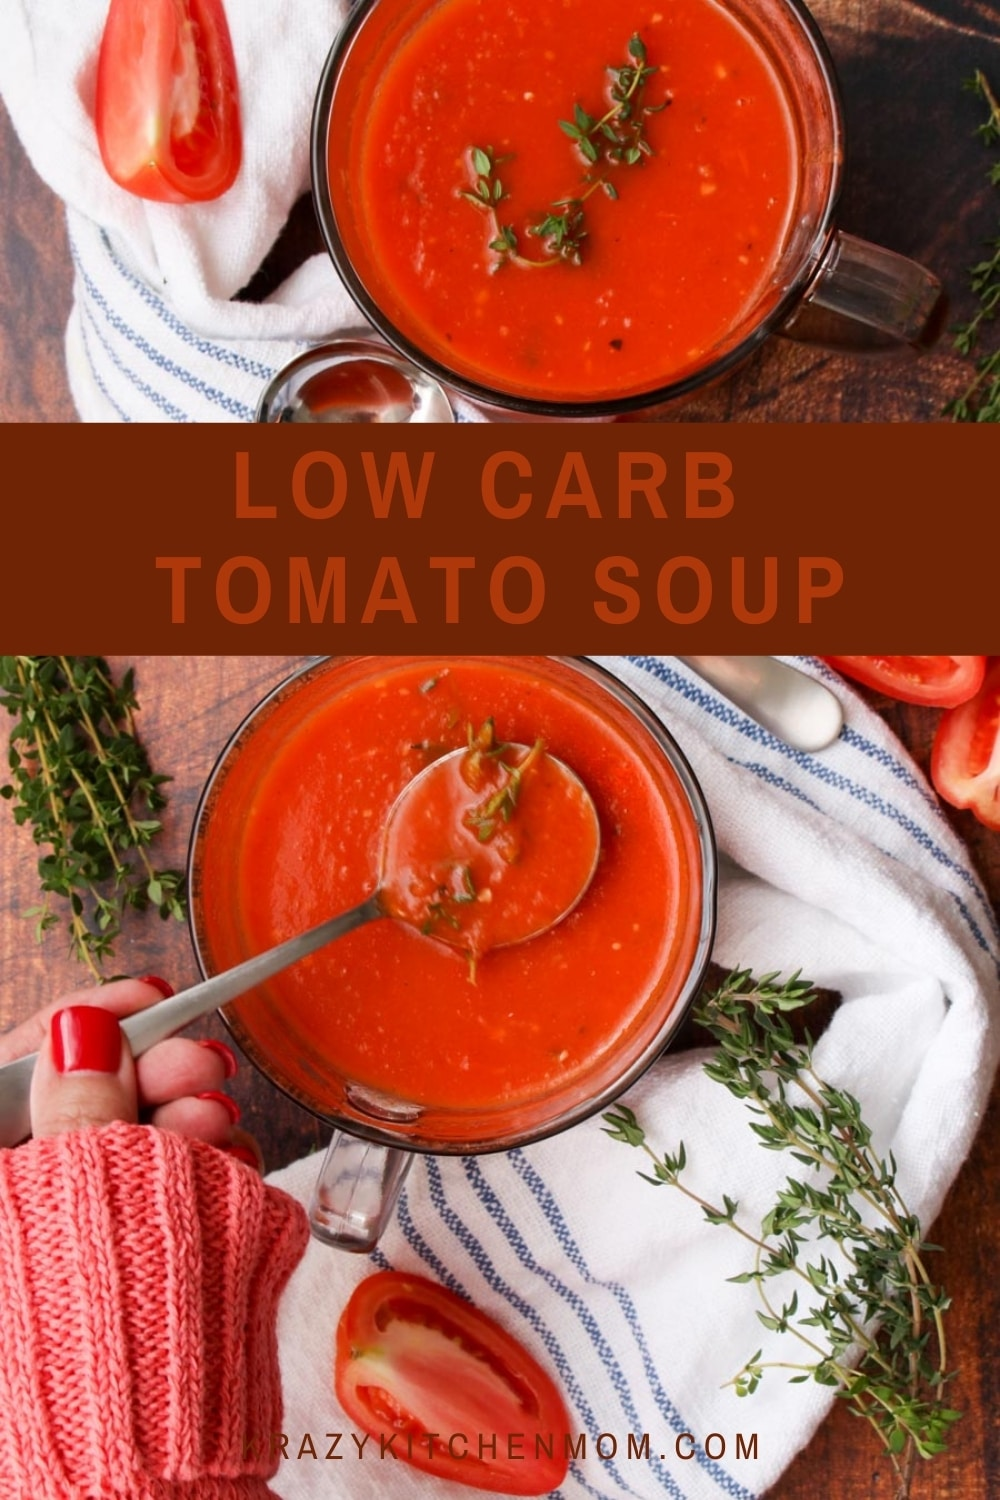 Ready in 30 minutes, you won't even miss the carbs, calories, or the cream in this Low Carb Low-Calorie Homemade Tomato Soup. via @krazykitchenmom